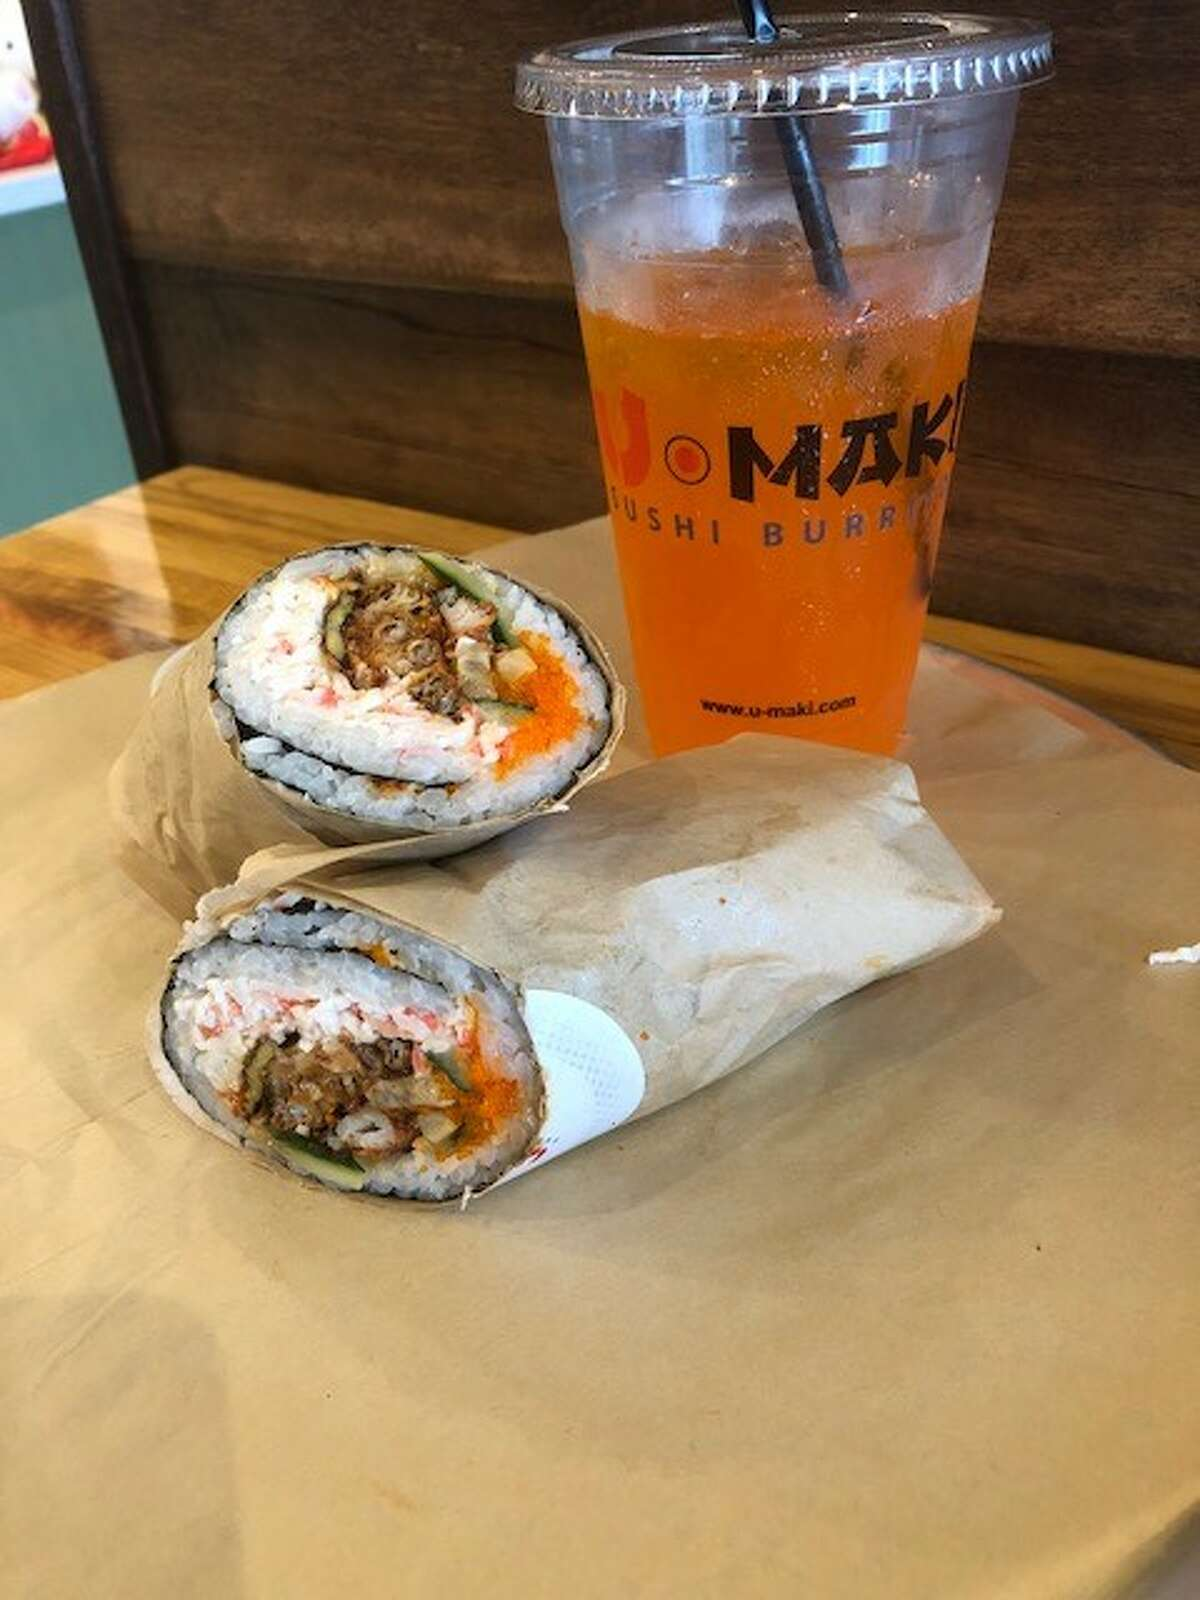 A second U'Maki Sushi Burrito restaurant has opened at 98 West Grand Parkway South at the Shoppes at Grand Crossing in Katy.